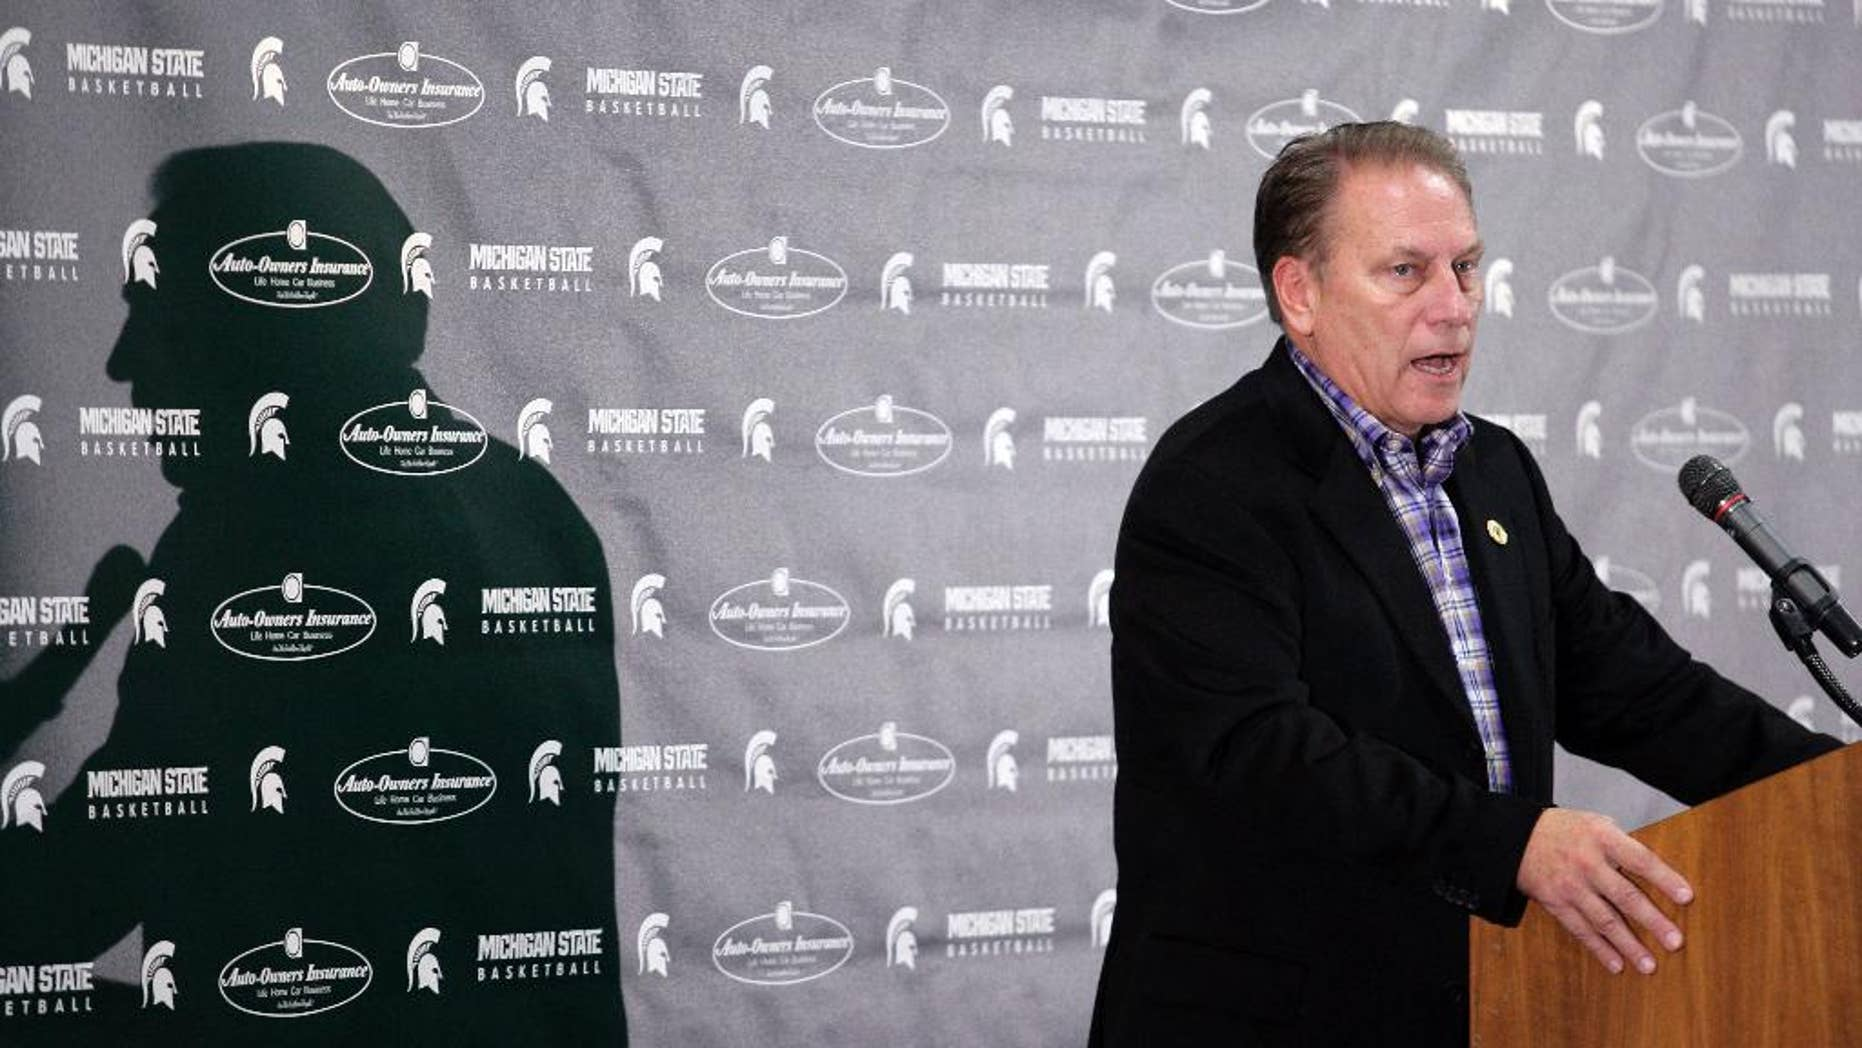 Michigan State coach Tom Izzo talks about the upcoming season during his team's NCAA college basketball media day, Tuesday, Oct. 28, 2014, in East Lansing, Mich. (AP Photo/Al Goldis)